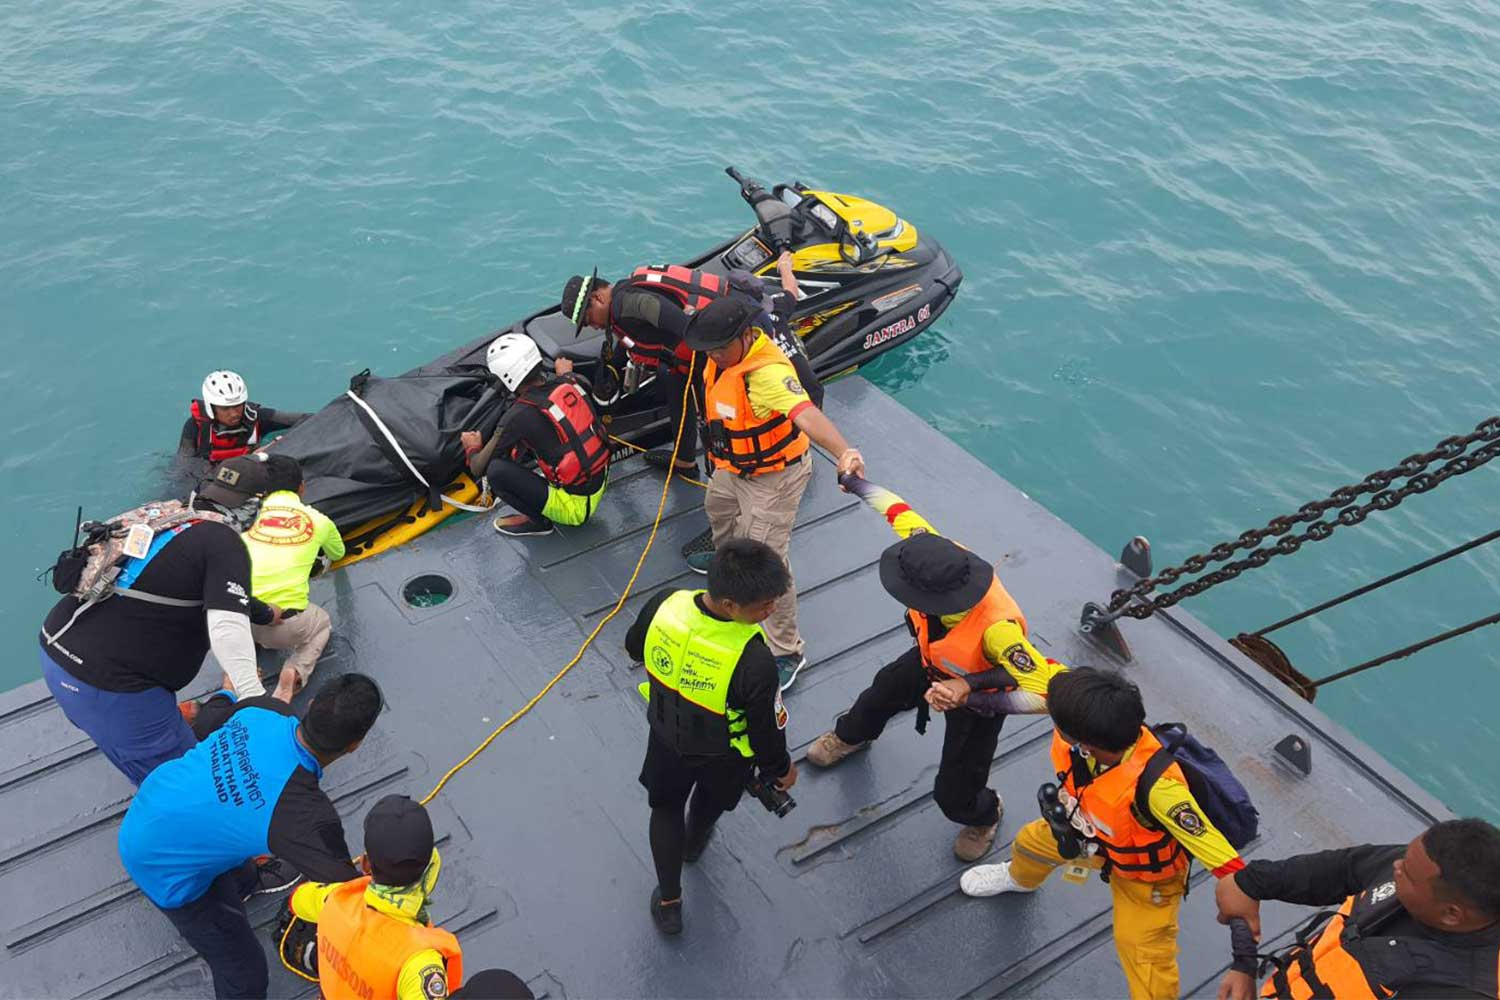 Rescuers bring the body of Naparada Chanhan, 42, a sales staff member of the capsized Raja 4 Ferry, to a navy ship in Surat Thani on Friday. (Photo: Supapong Chaolan)